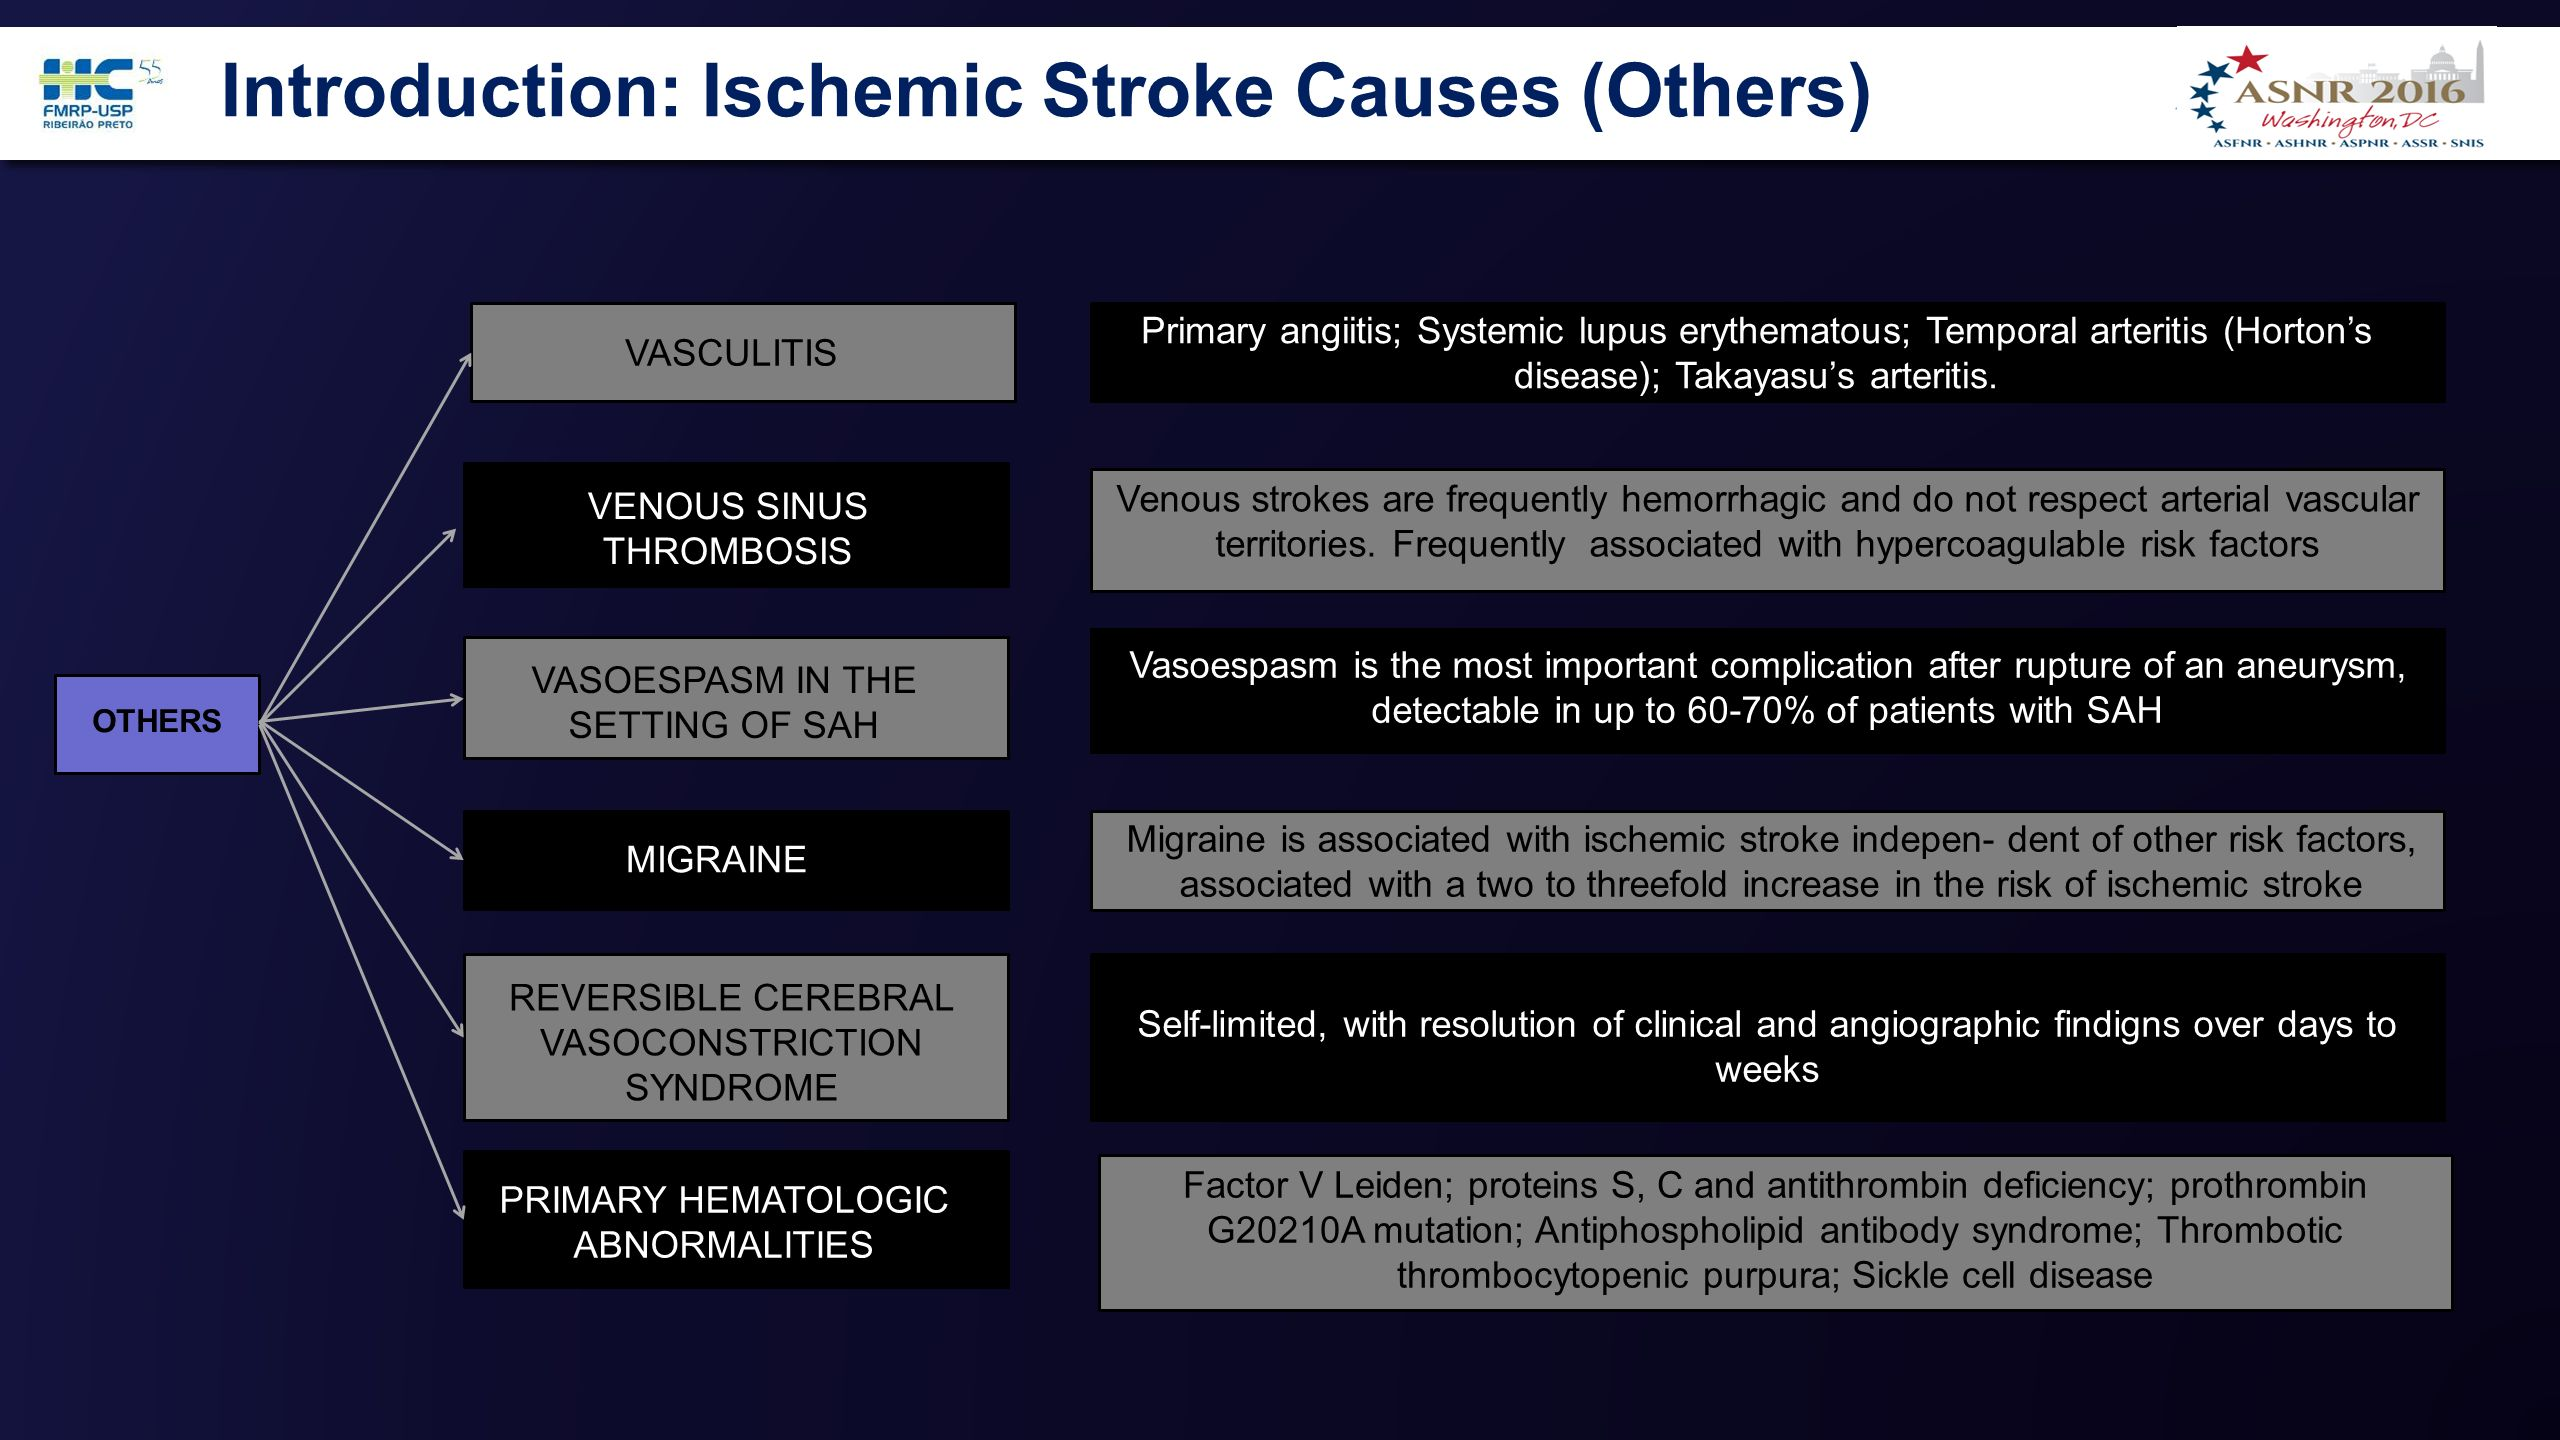 stroke research an introduction Introduction: the progress of effective therapies for stroke has become a   results: members of several experienced stroke research groups prepared a  guide.